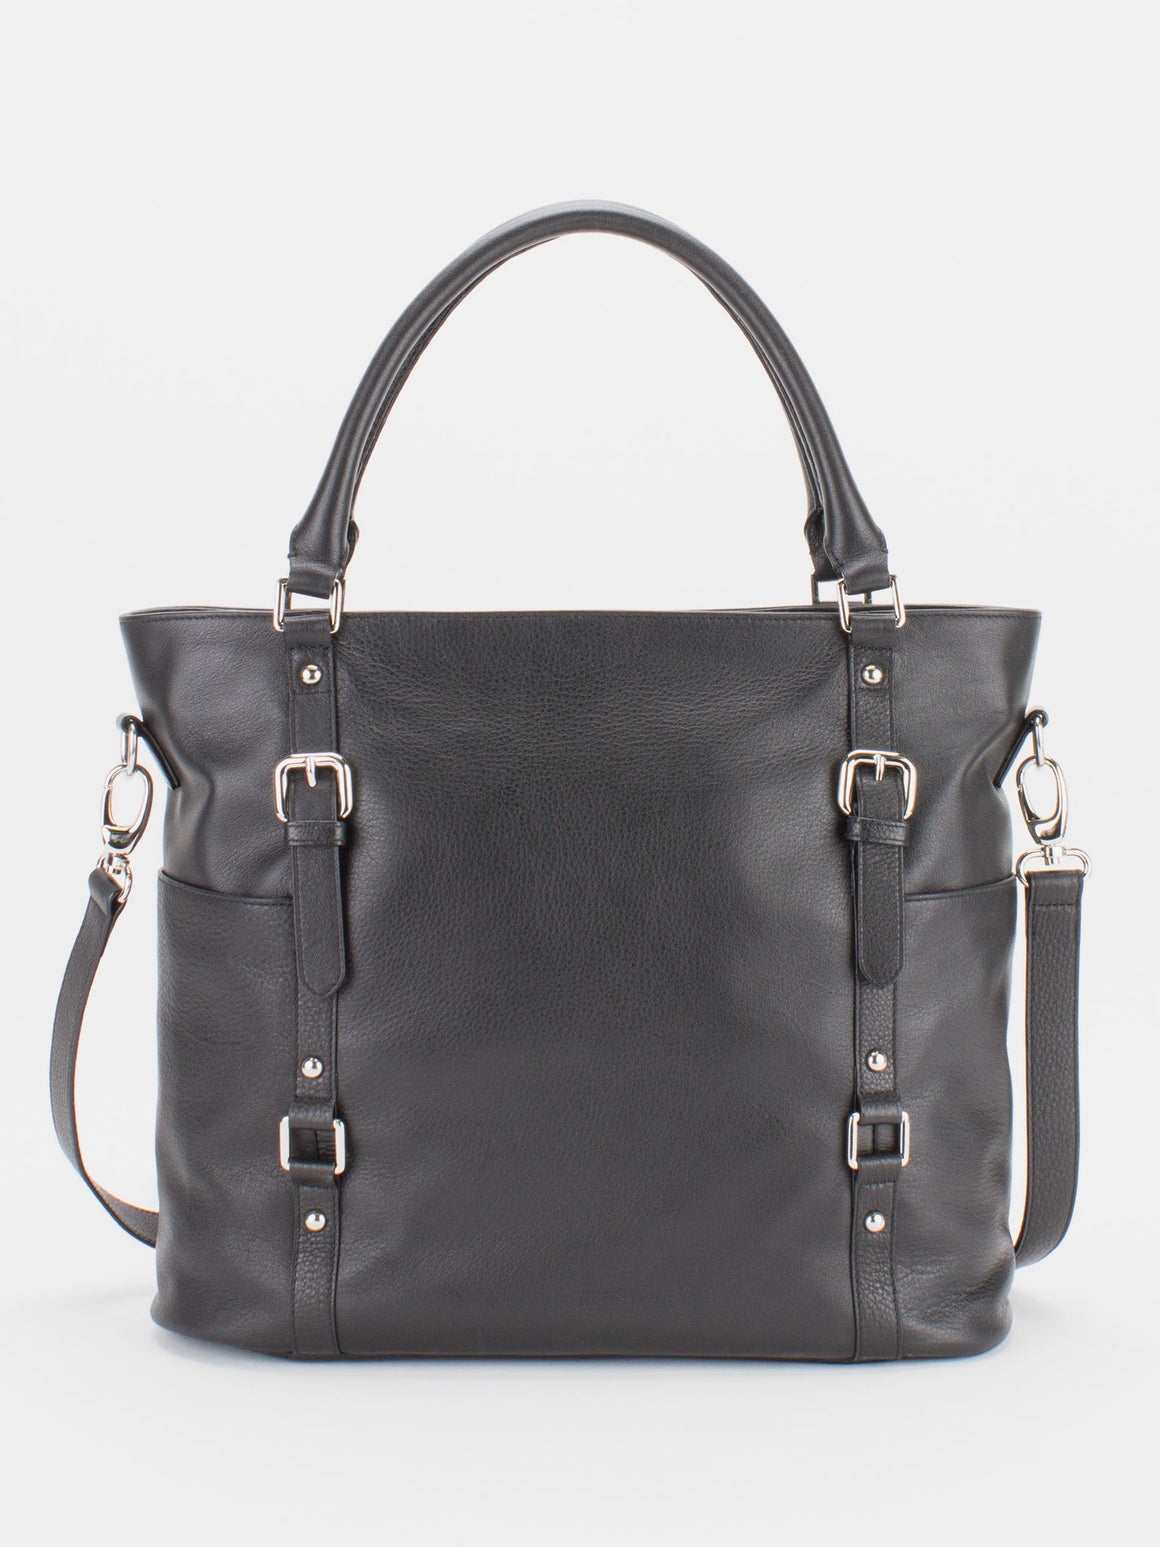 Aubrey Large Leather Tote - Black